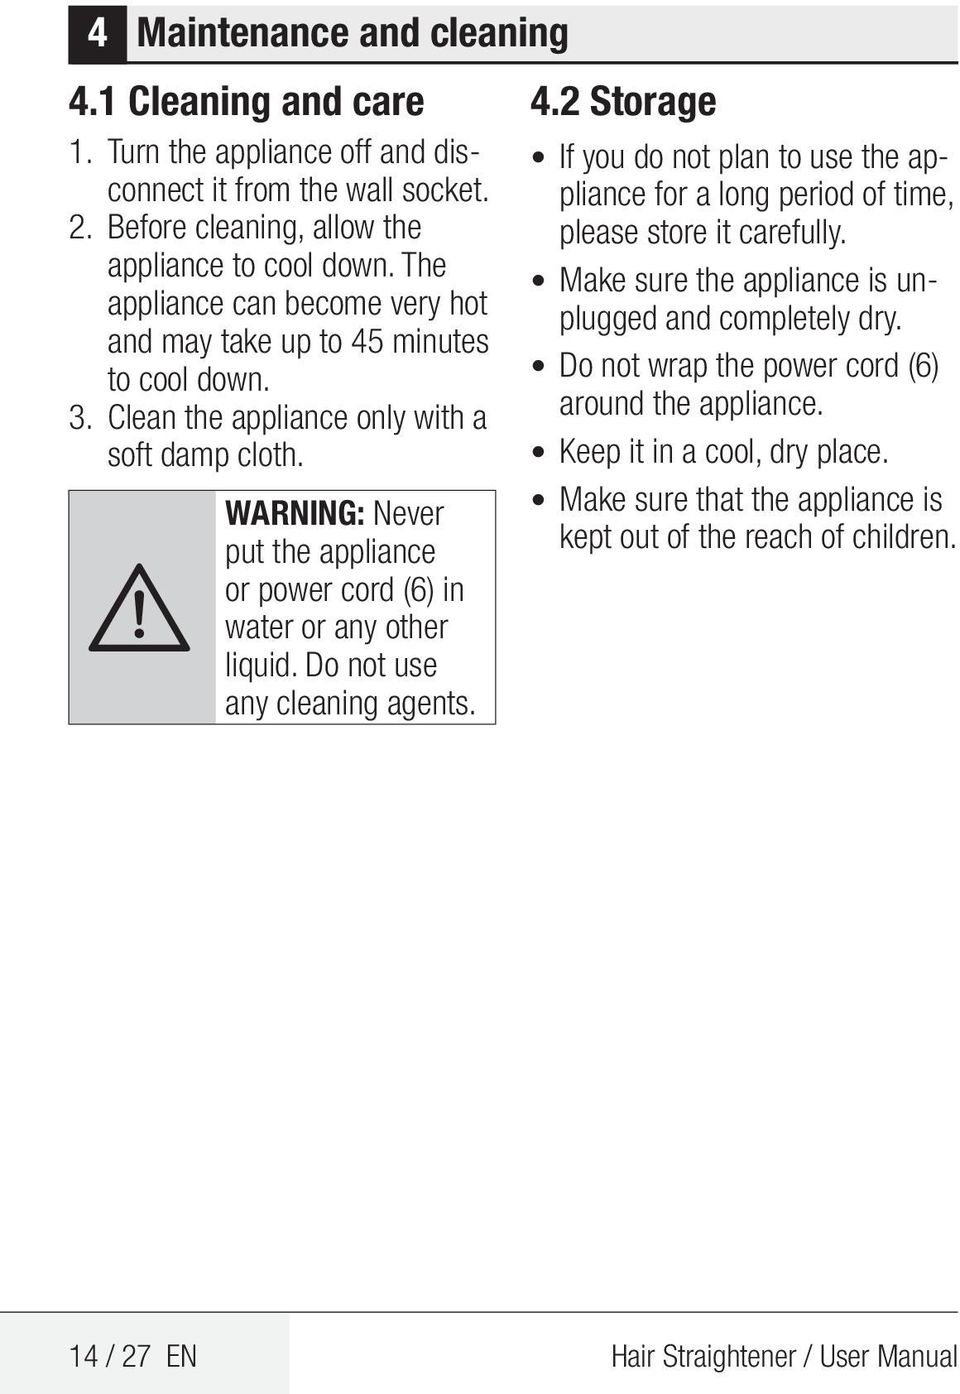 A WARNING: Never put the appliance or power cord (6) in water or any other liquid. Do not use any cleaning agents. 4.